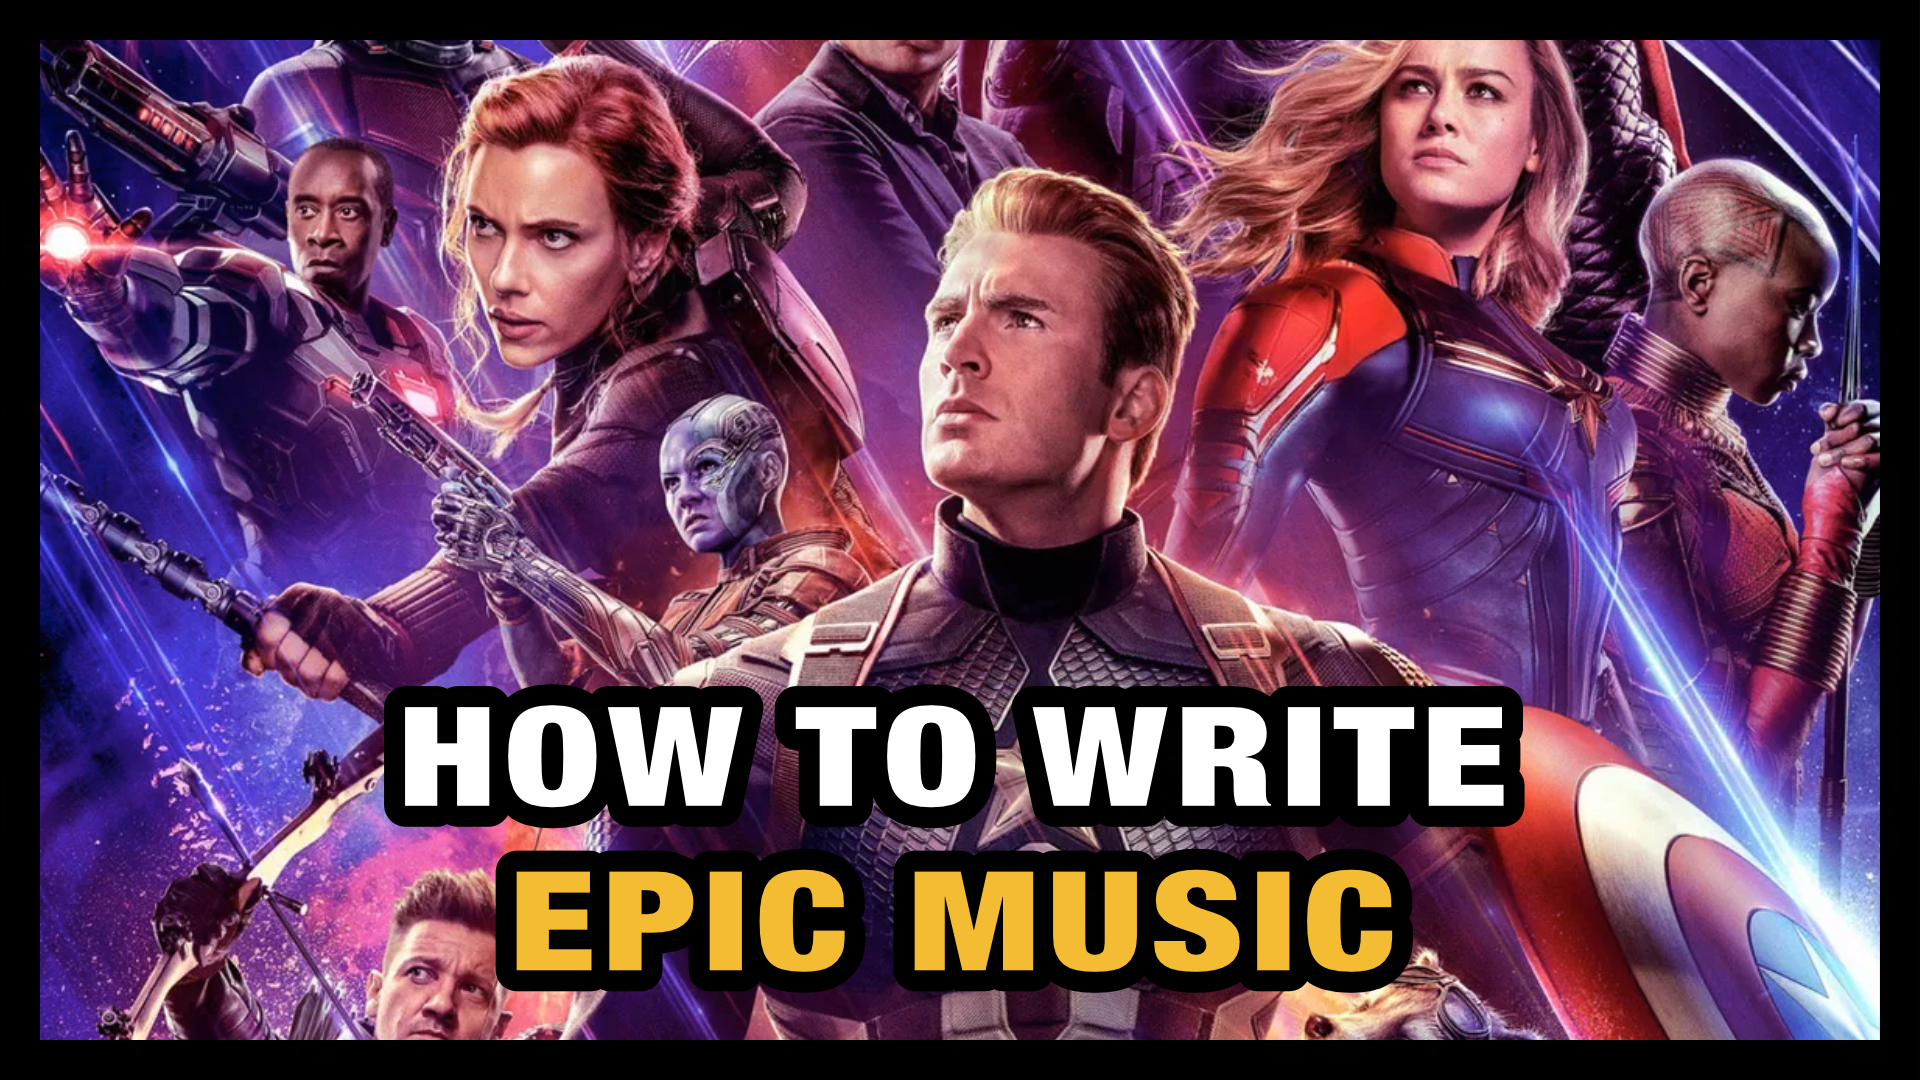 How to write Epic Music